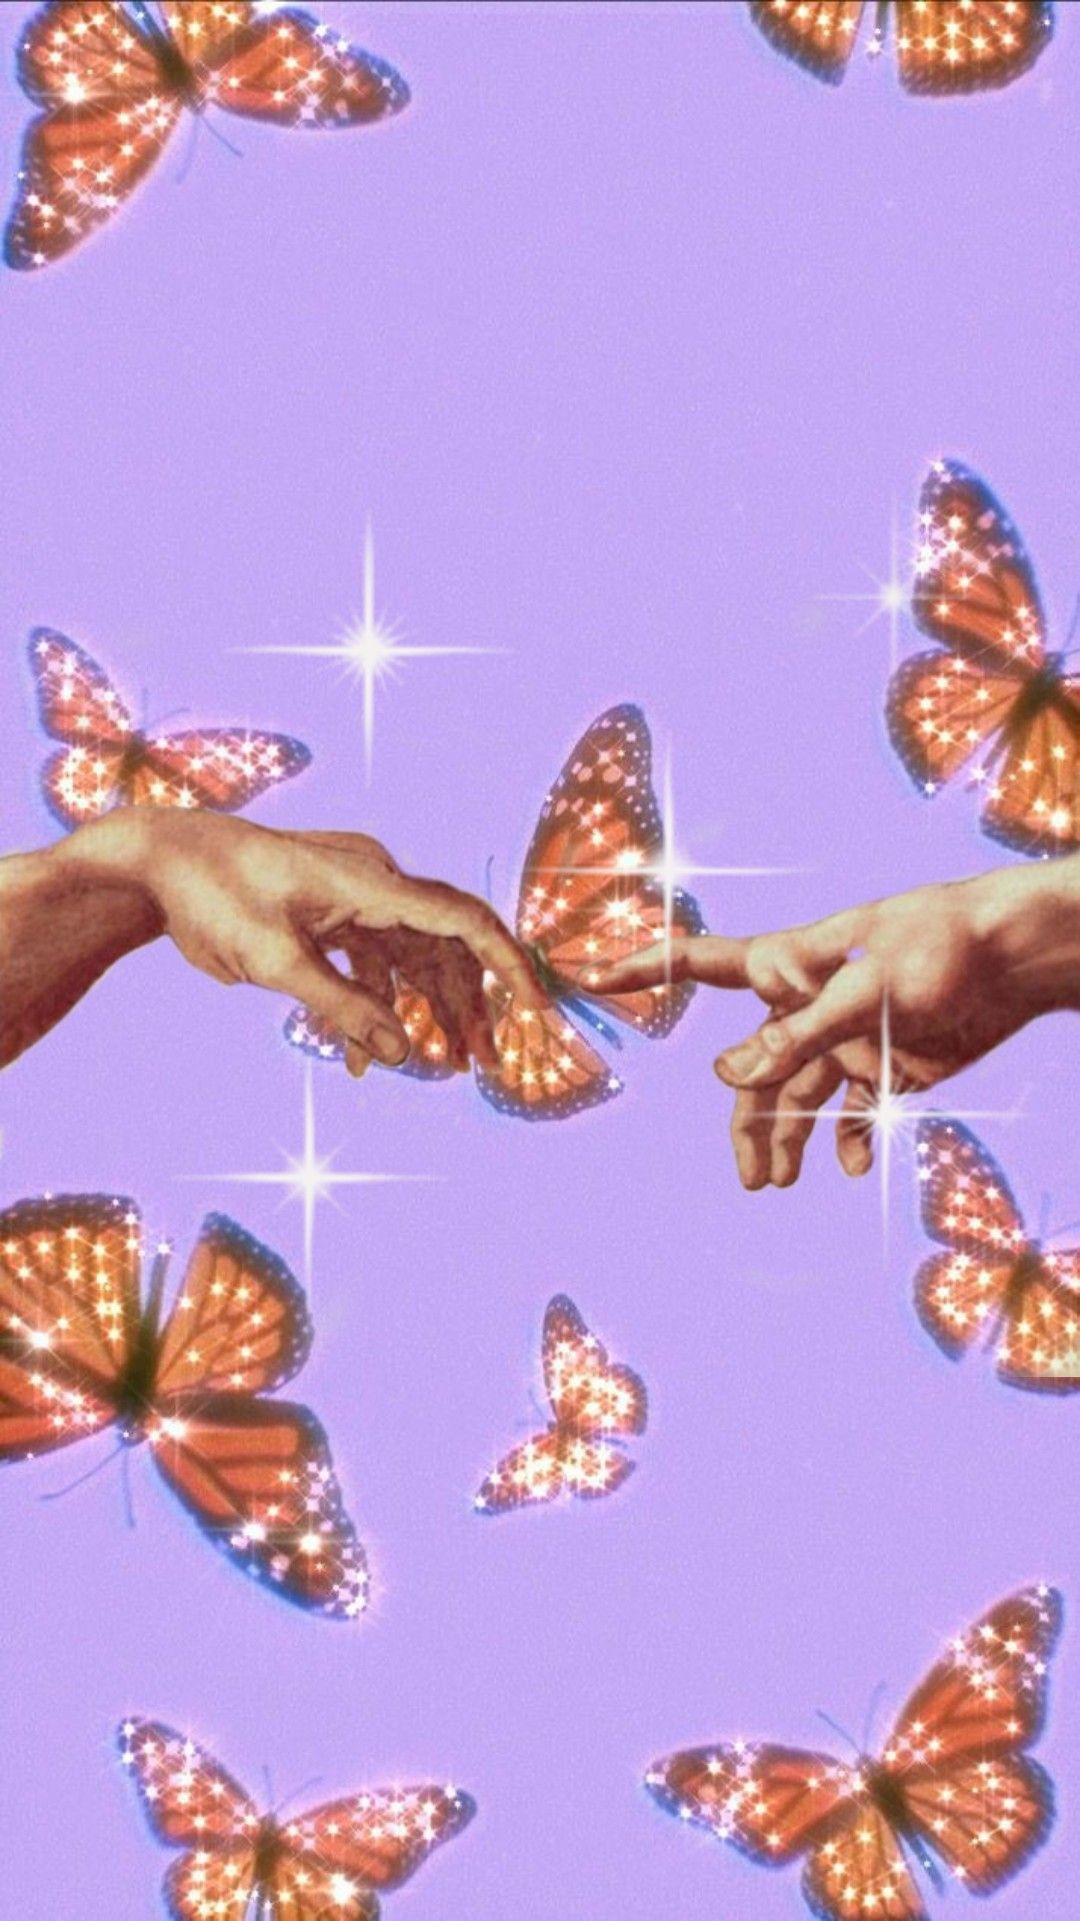 Aesthetic Butterfly Wallpaper Aesthetic Iphone Wallpaper Butterfly Wallpaper Hand Wallpaper